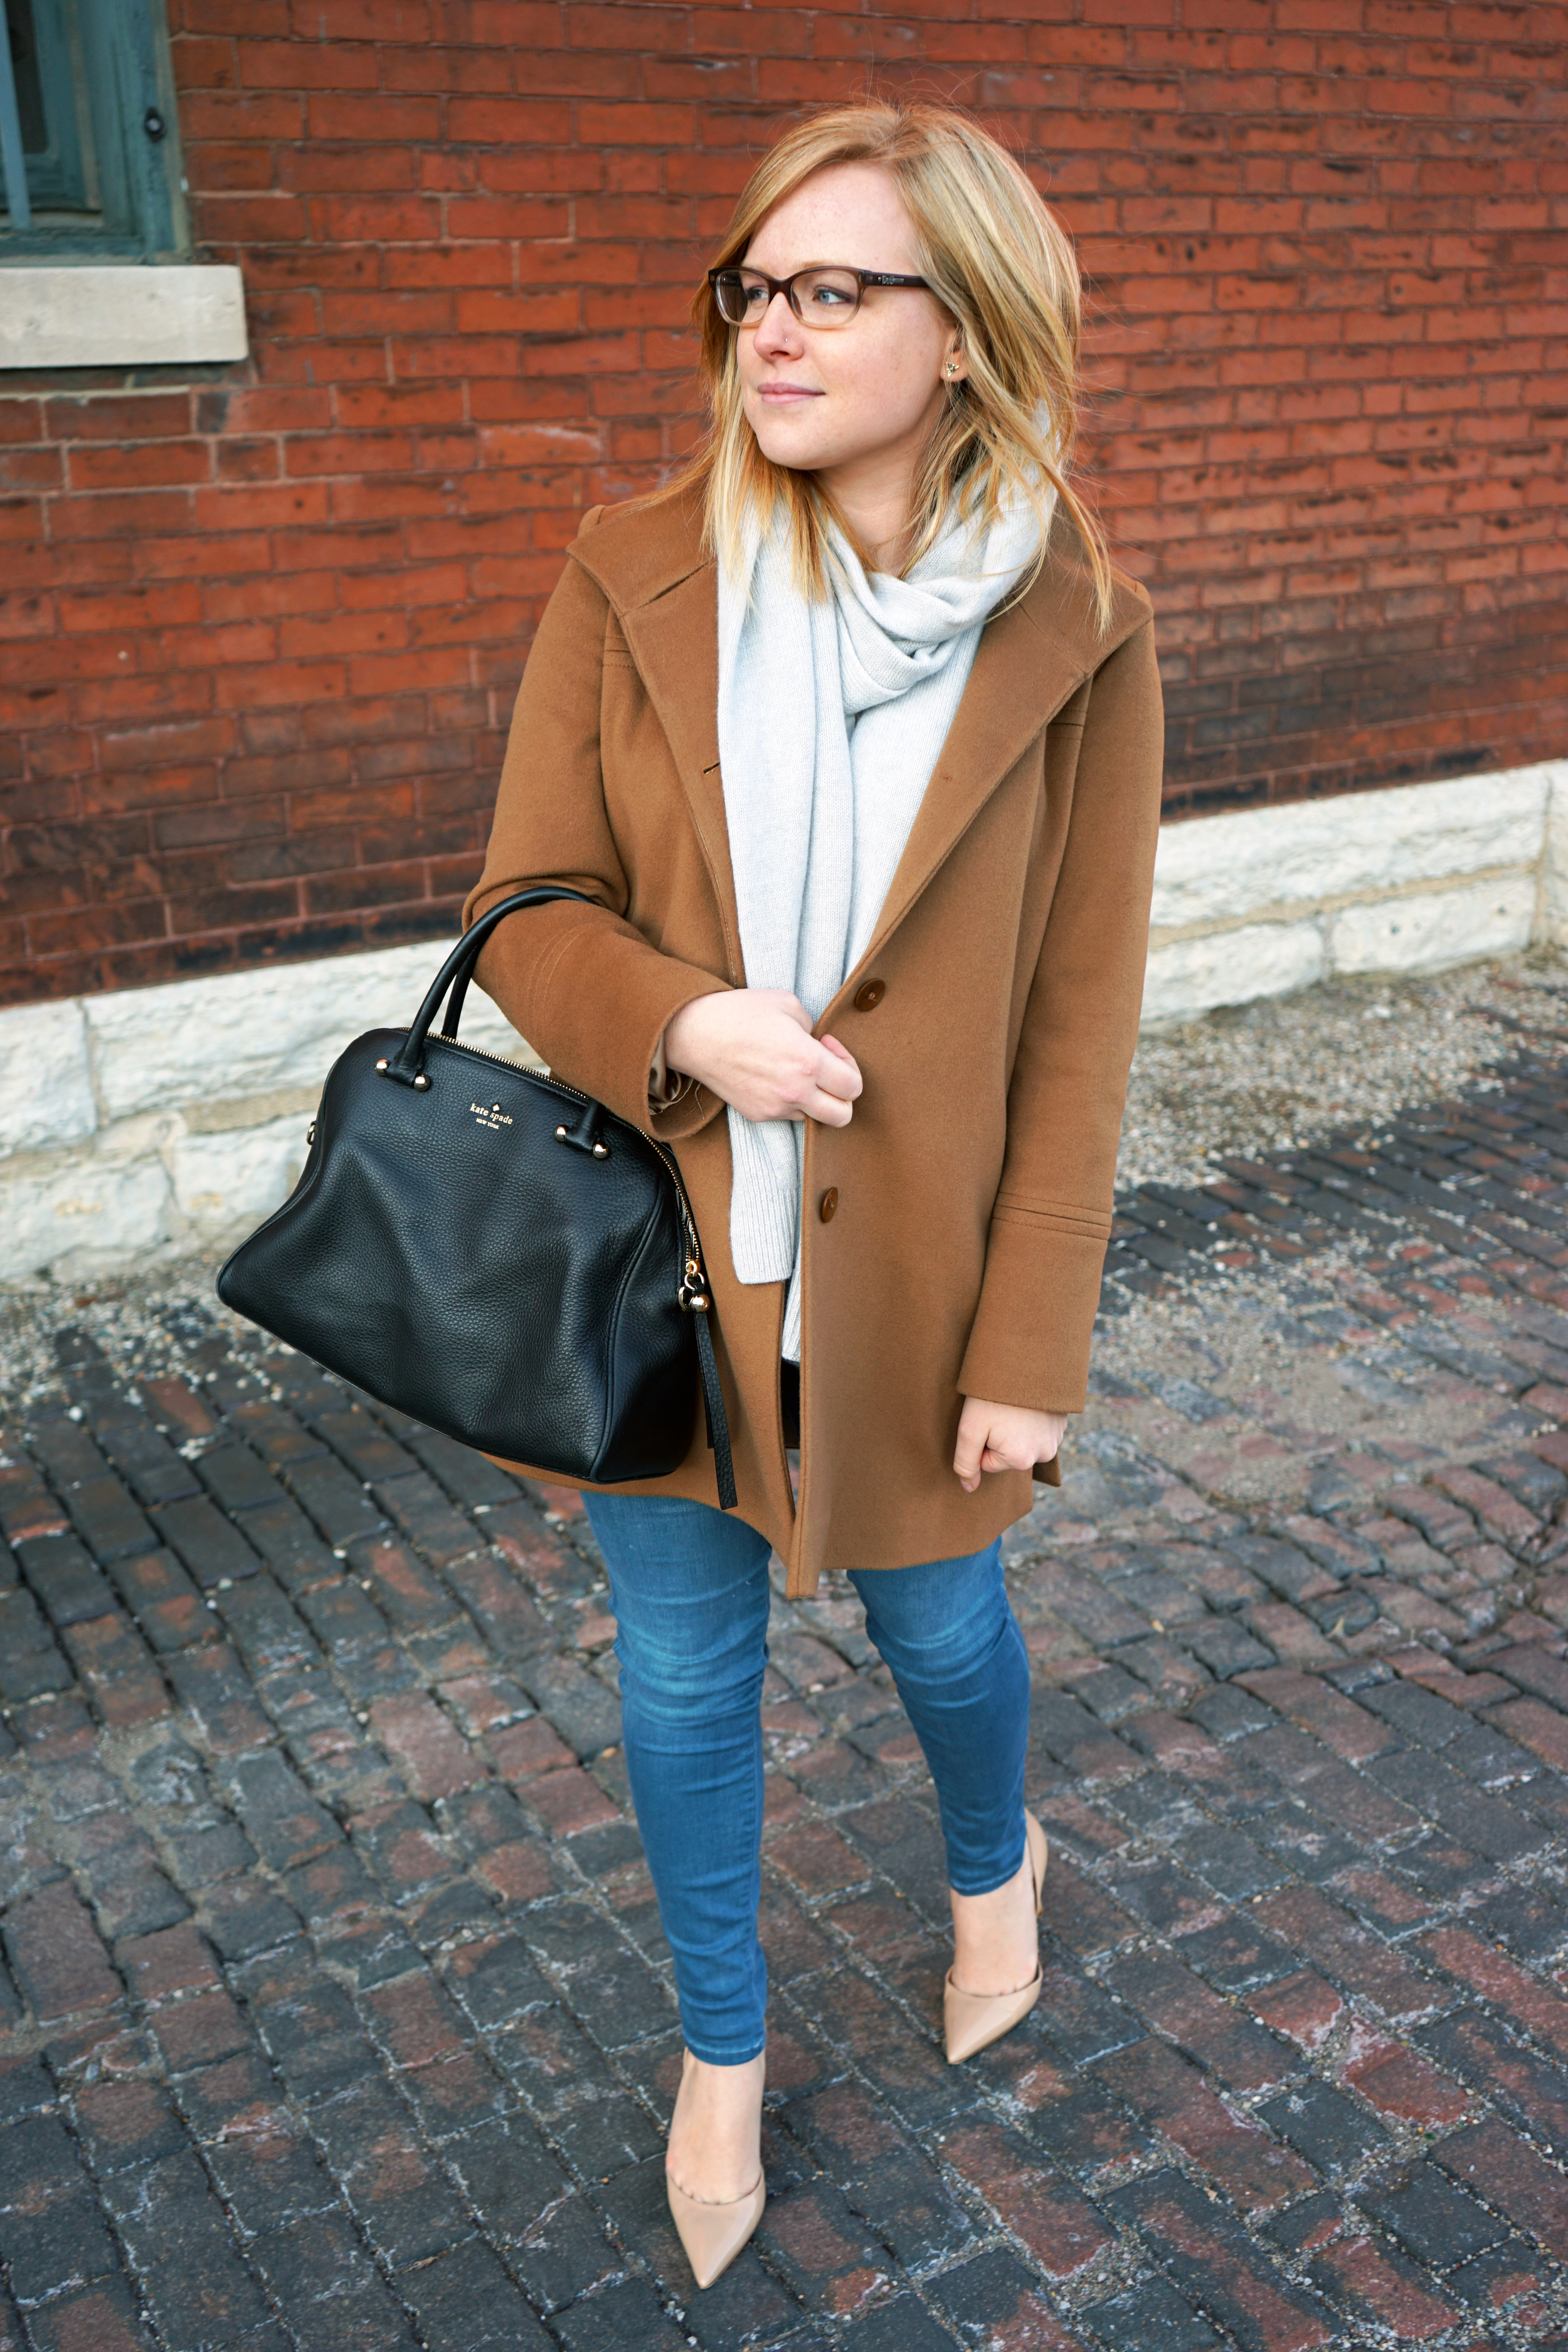 Fleurette Wool Stand Collar Car Coat, Banana Republic Todd and Duncan Plaited Cashmere scarf, J Brand Impulse jeans, Manolo Blahnik Taylor pointed d'orsay heel, Kate Spade purse